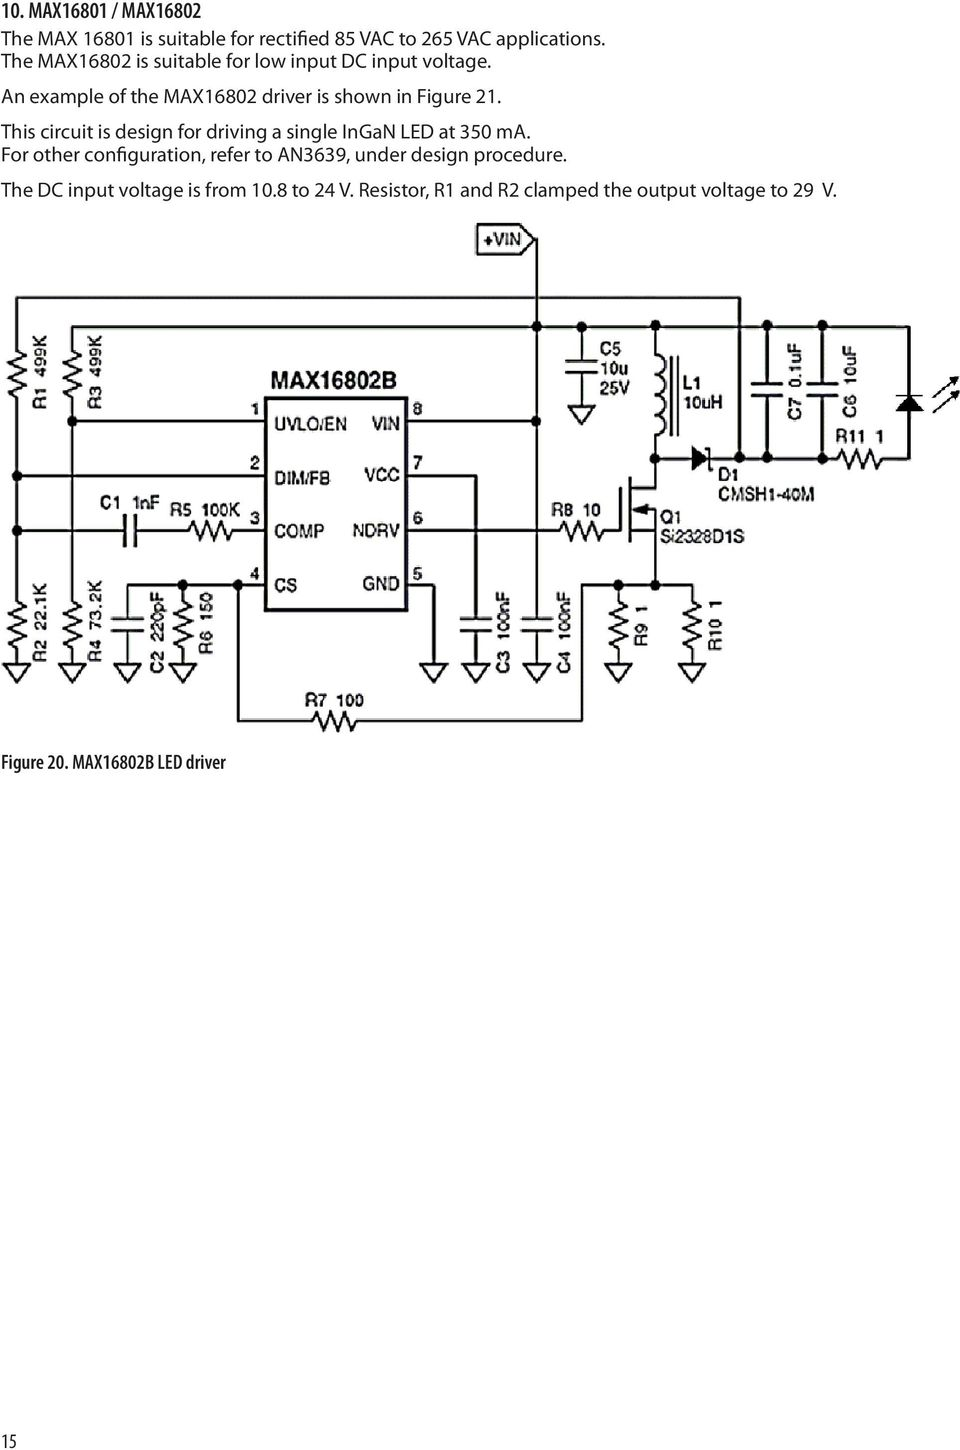 Application Note Pdf 3a Switching Voltage Regulator Based Lm317hv This Circuit Is Design For Driving A Single Ingan Led At 350 Ma